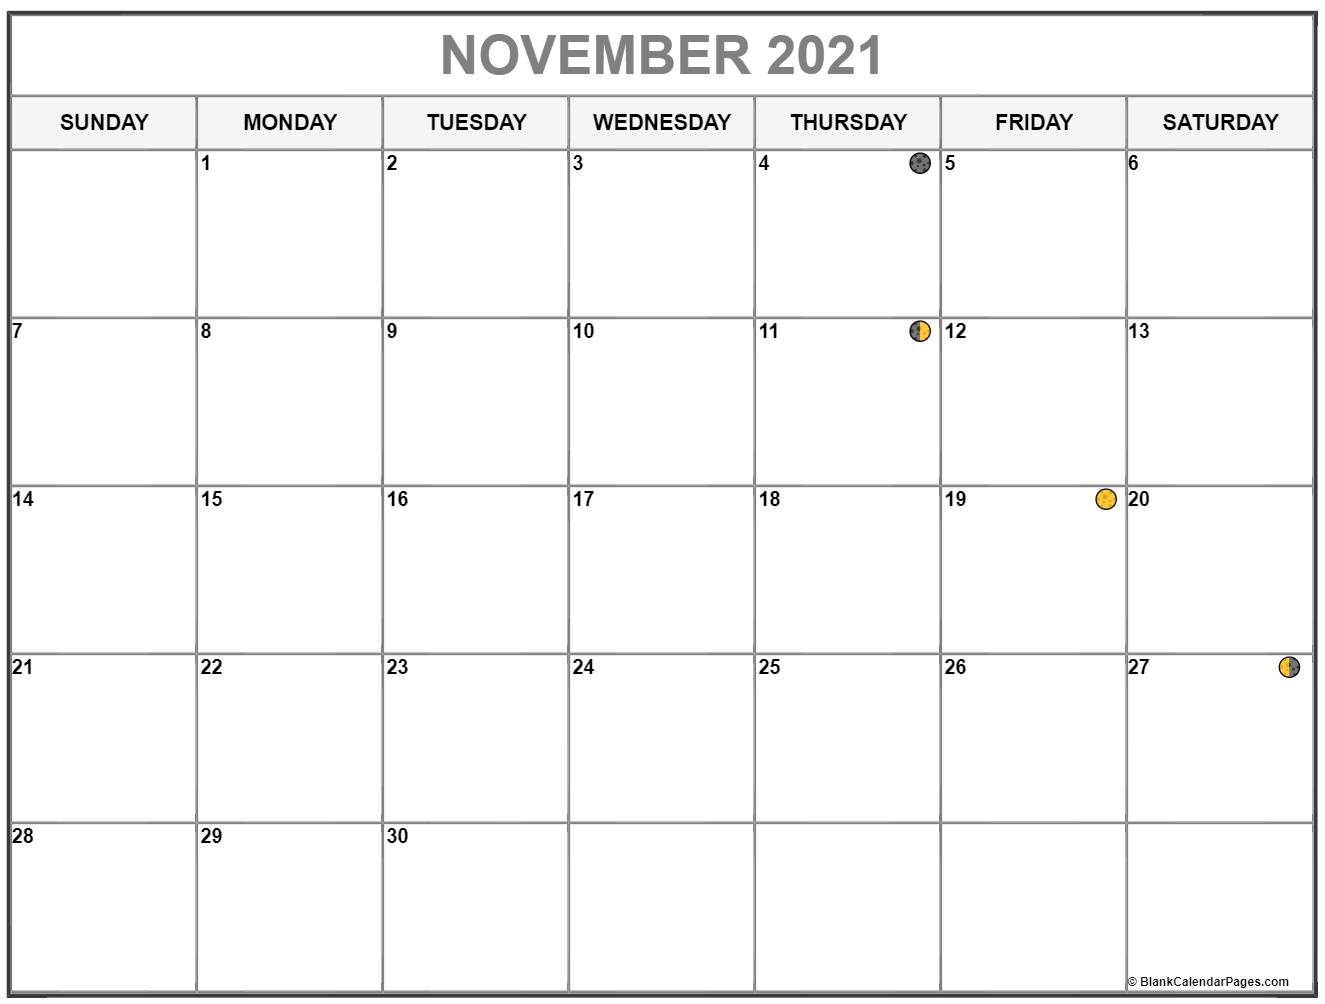 November 2021 Lunar calendar. moon phase calendar with USA holidays